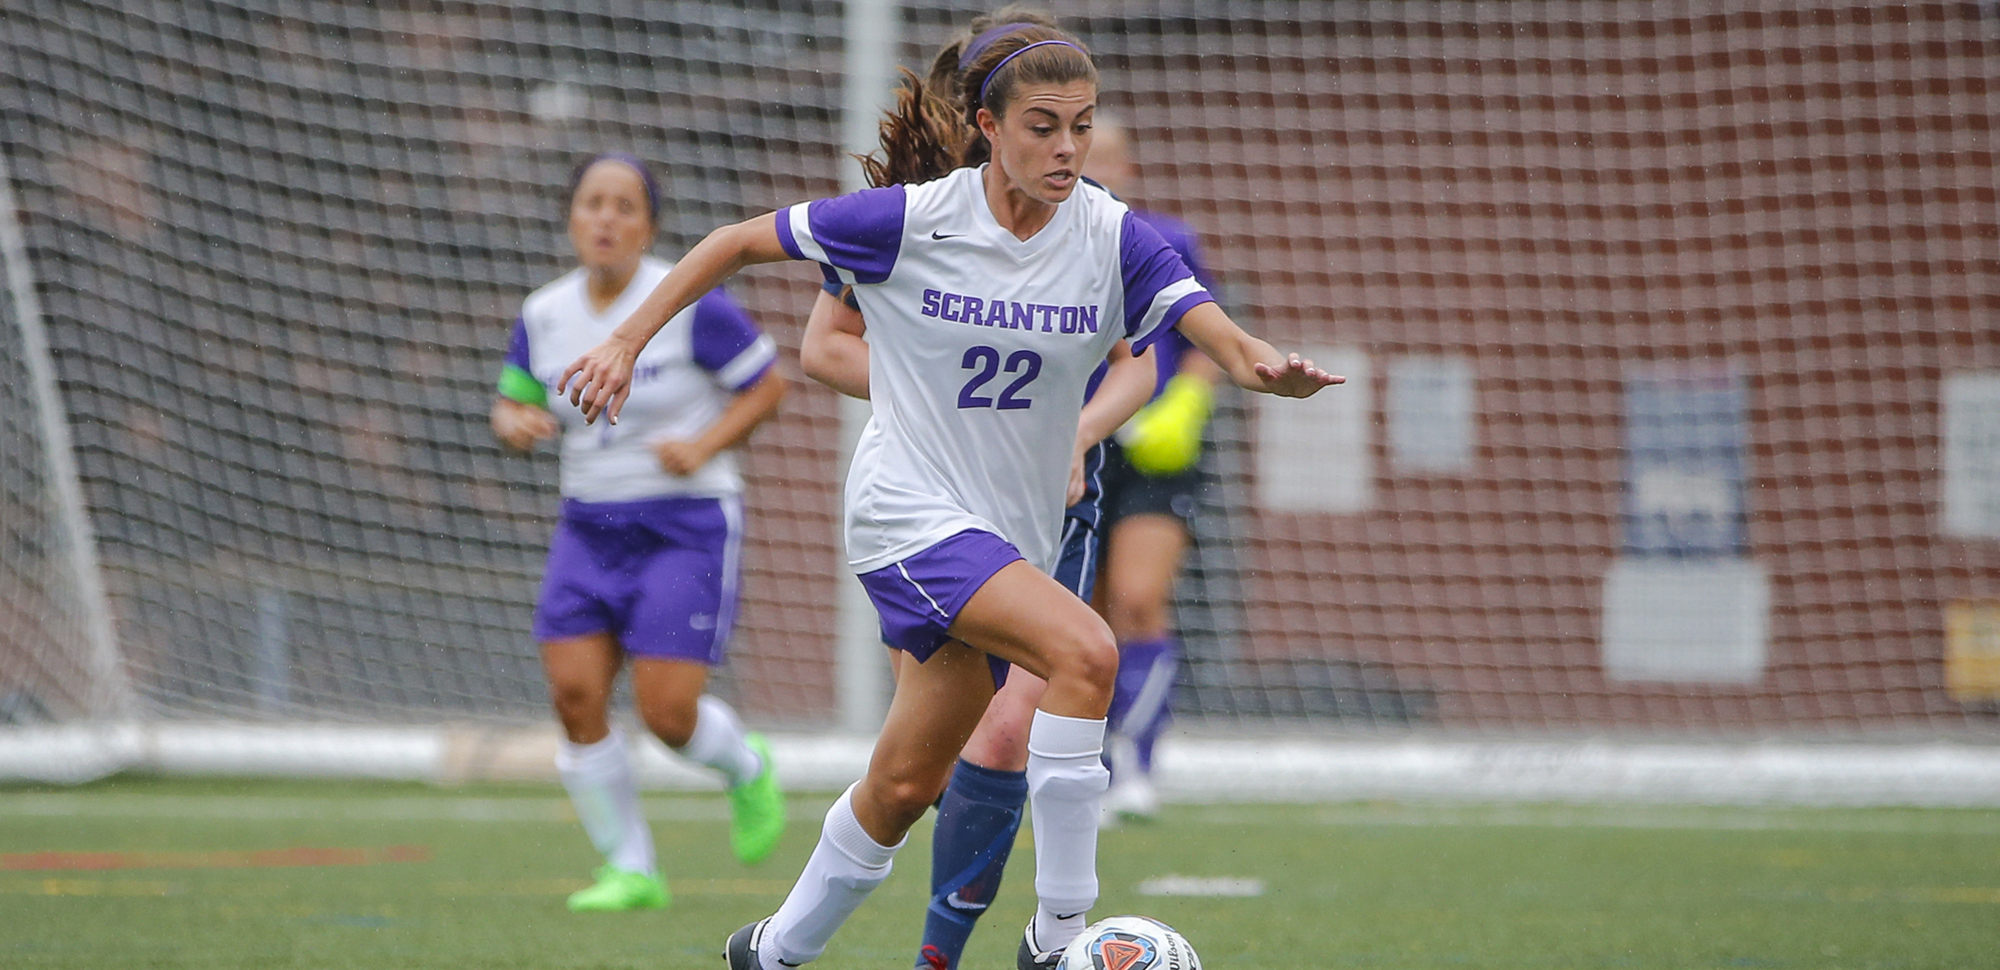 Senior forward Christina Akalski has been an all-region selection by the NSCAA in each of her first three seasons. She is one of eight seniors on this year's team.